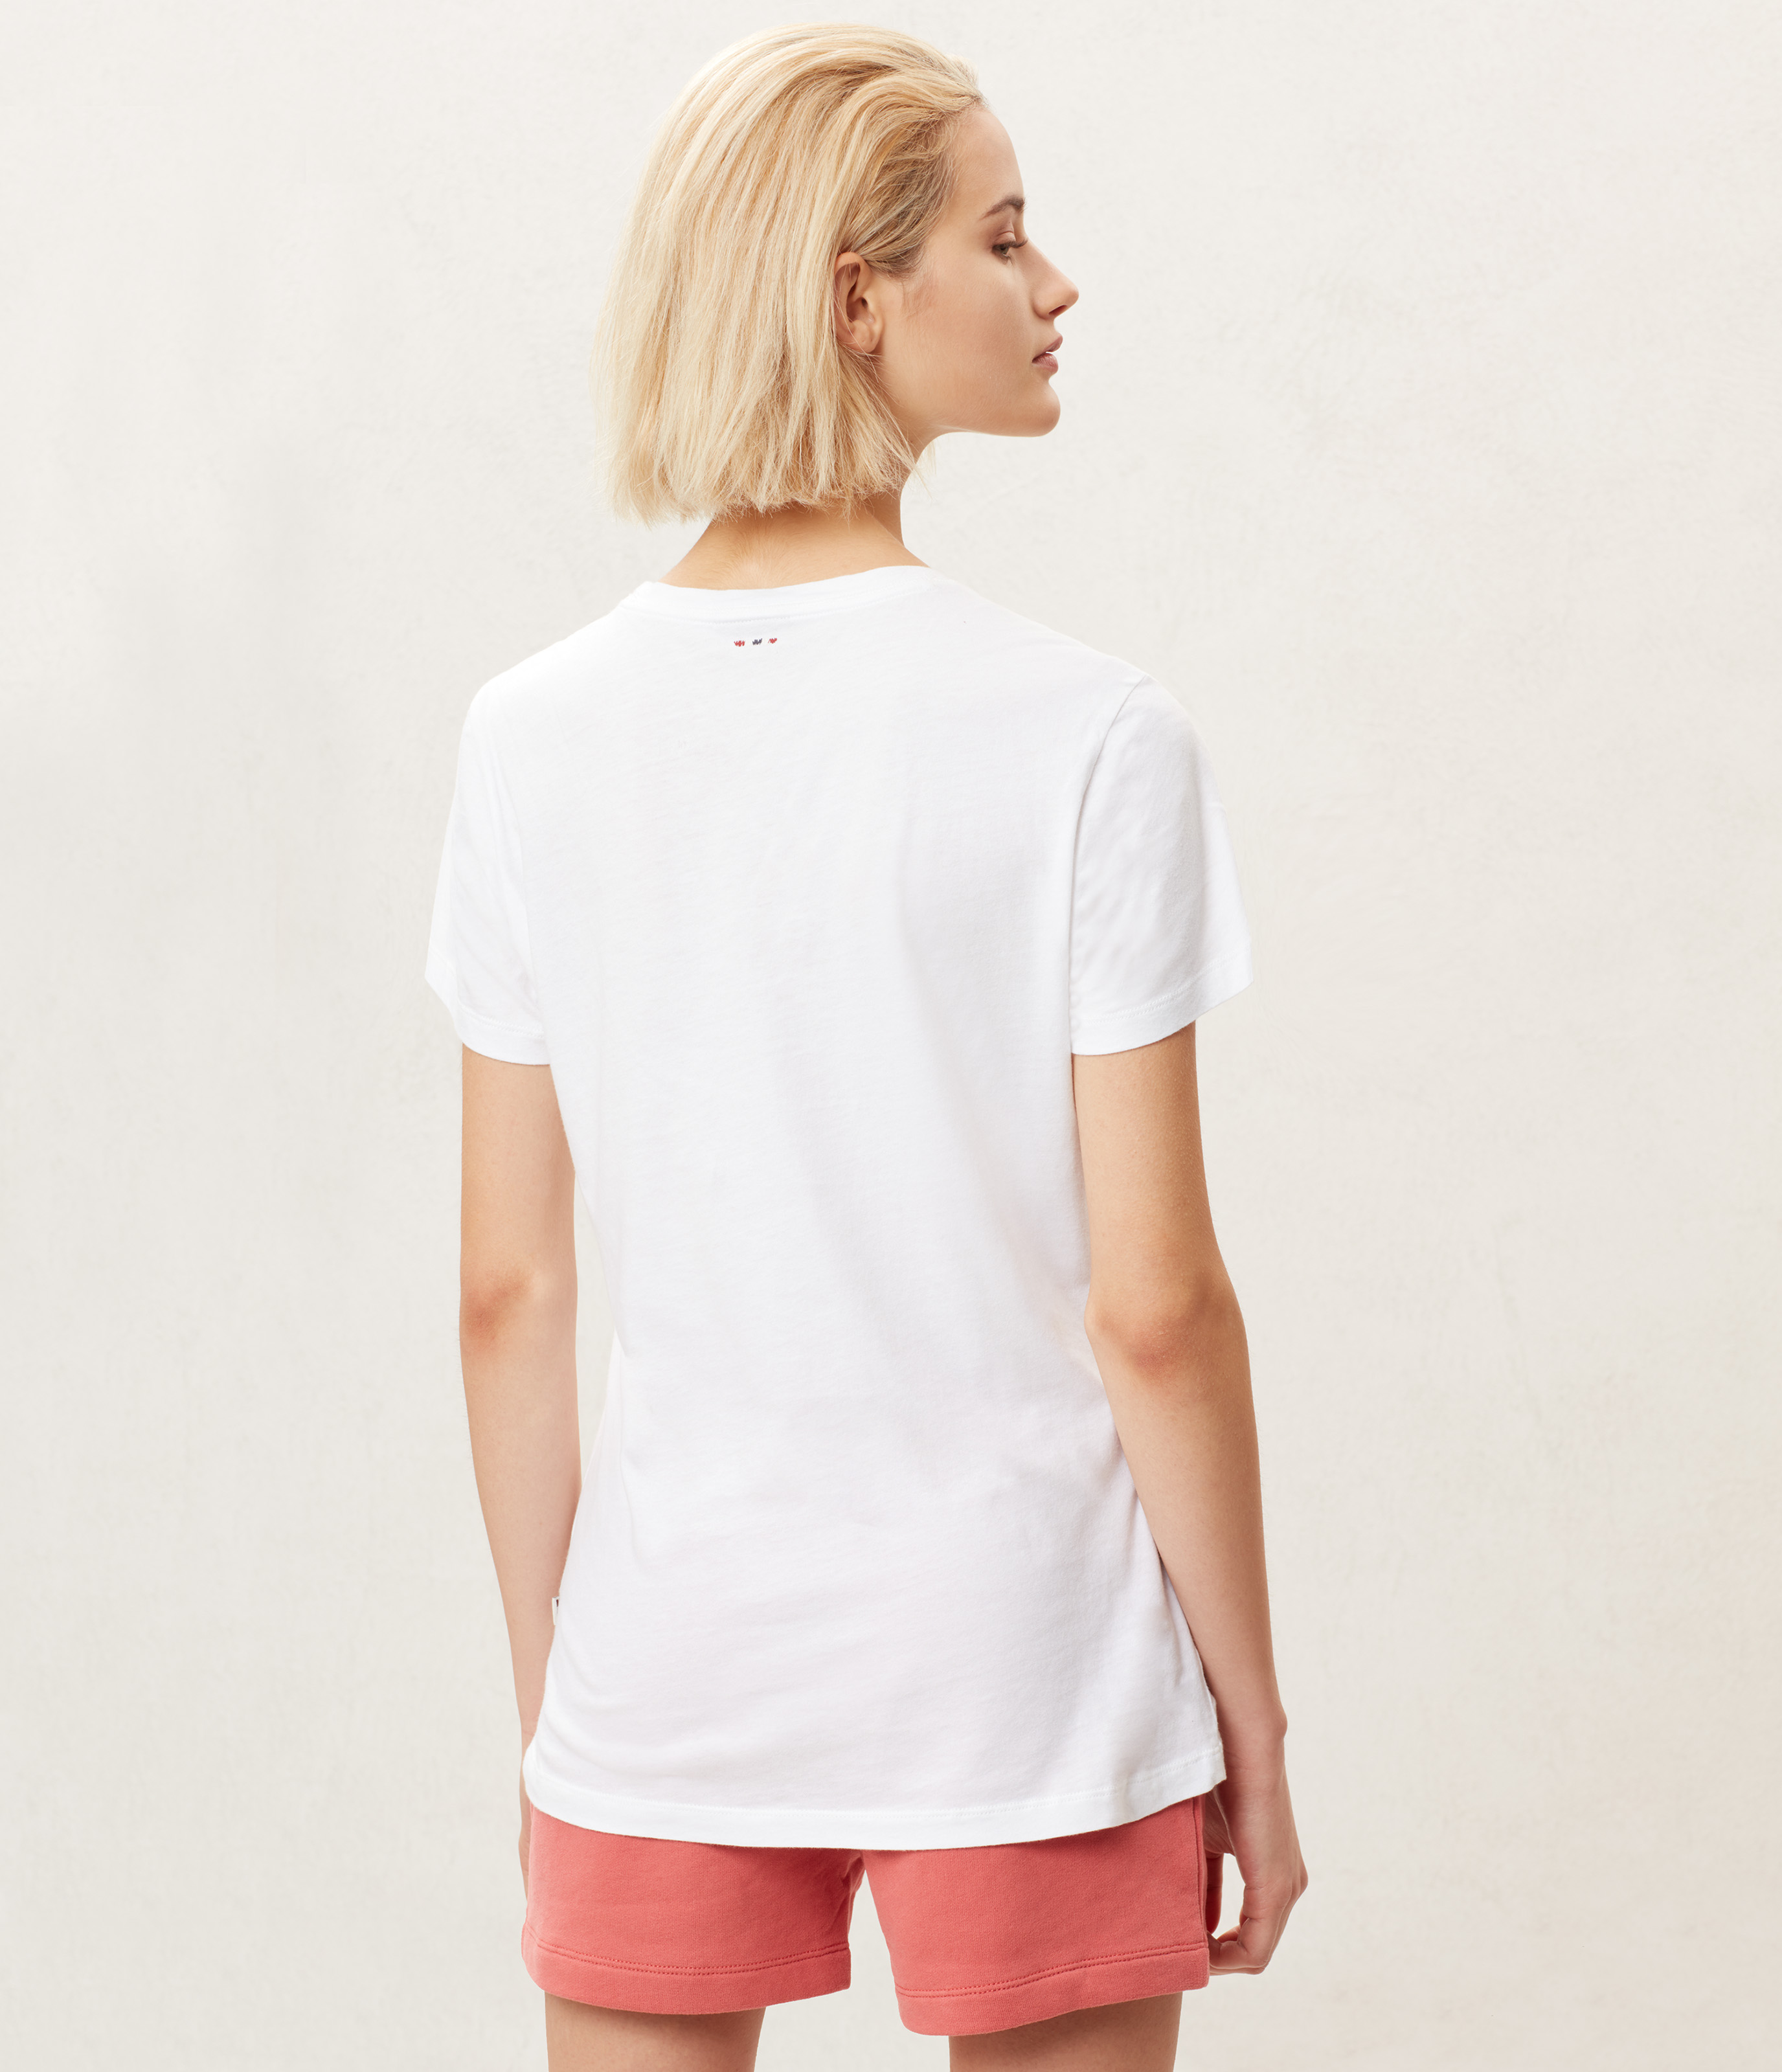 SONTHE W BRIGHT WHITE